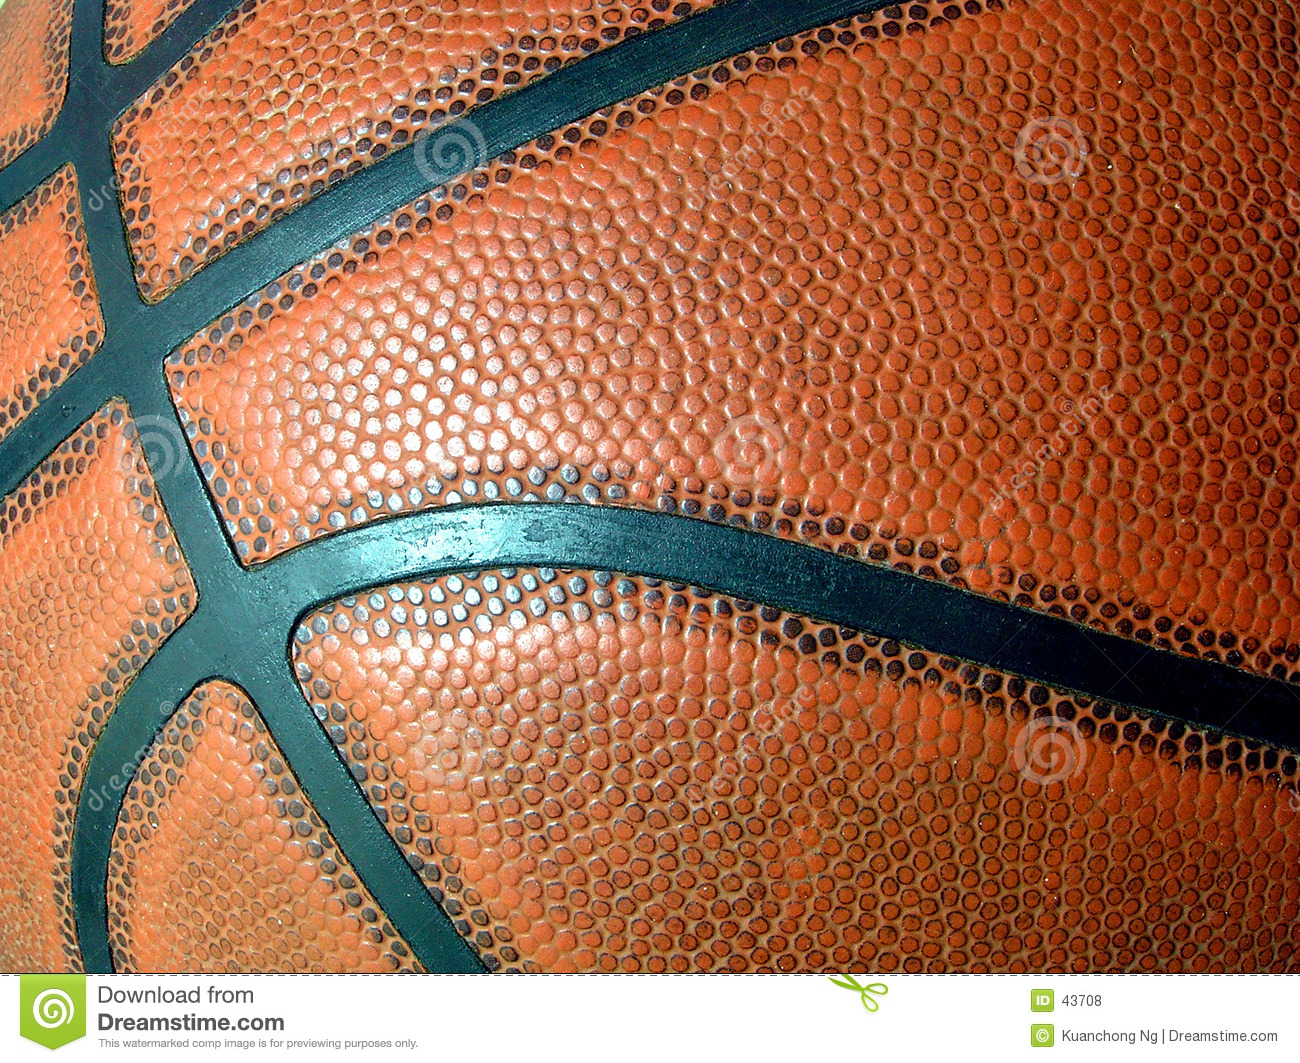 De close-up van het basketbal